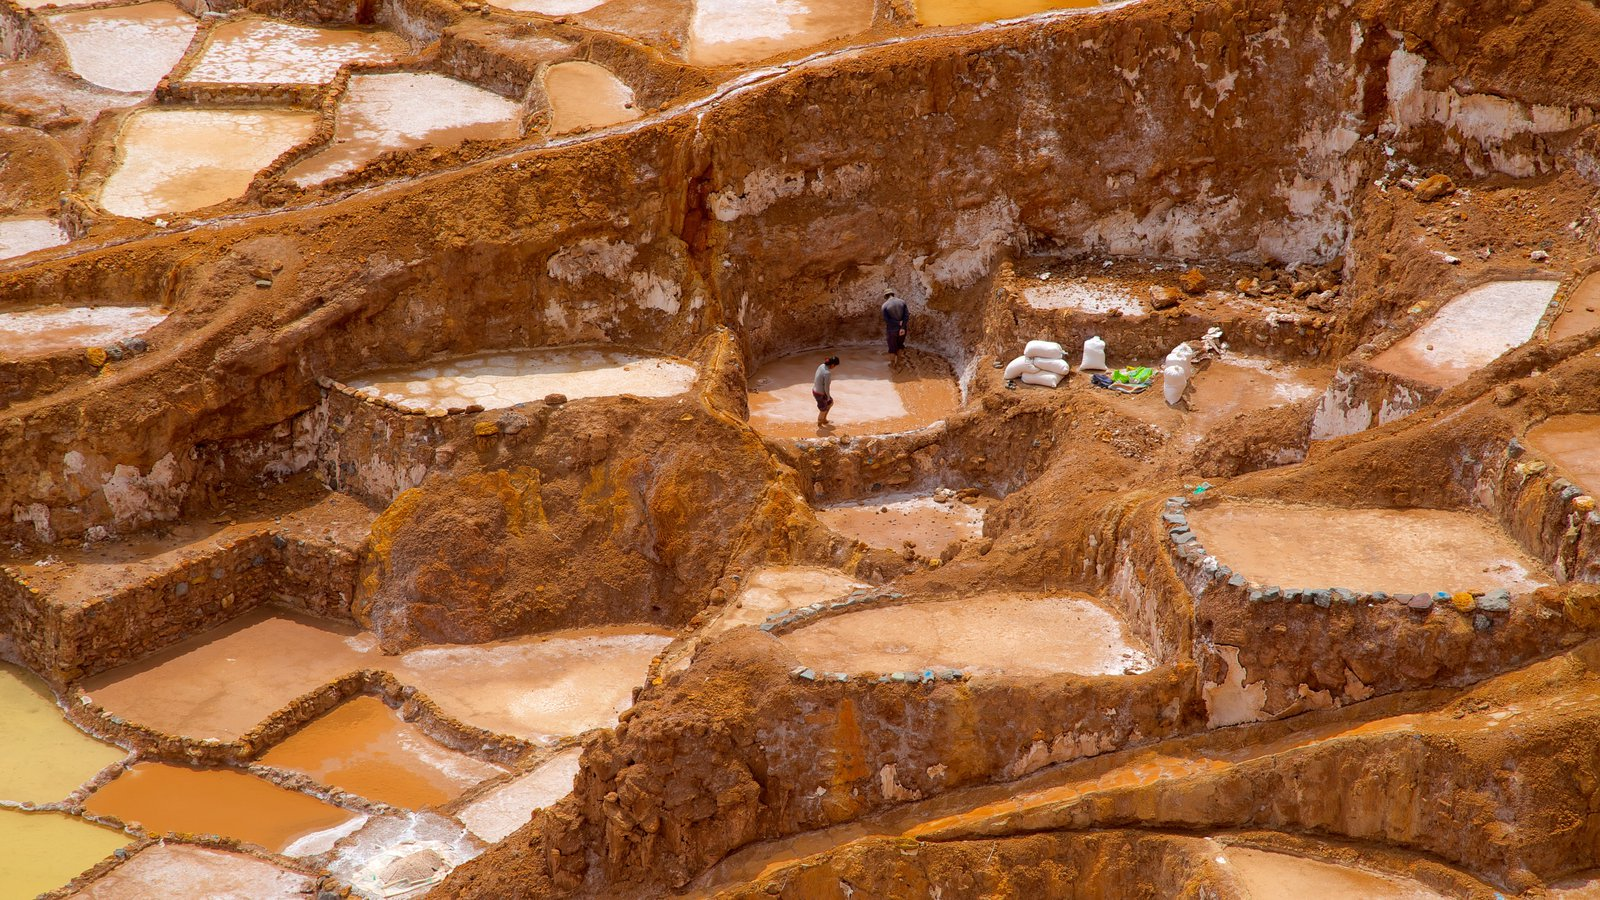 Salt Mines Of Maras which includes tranquil scenes